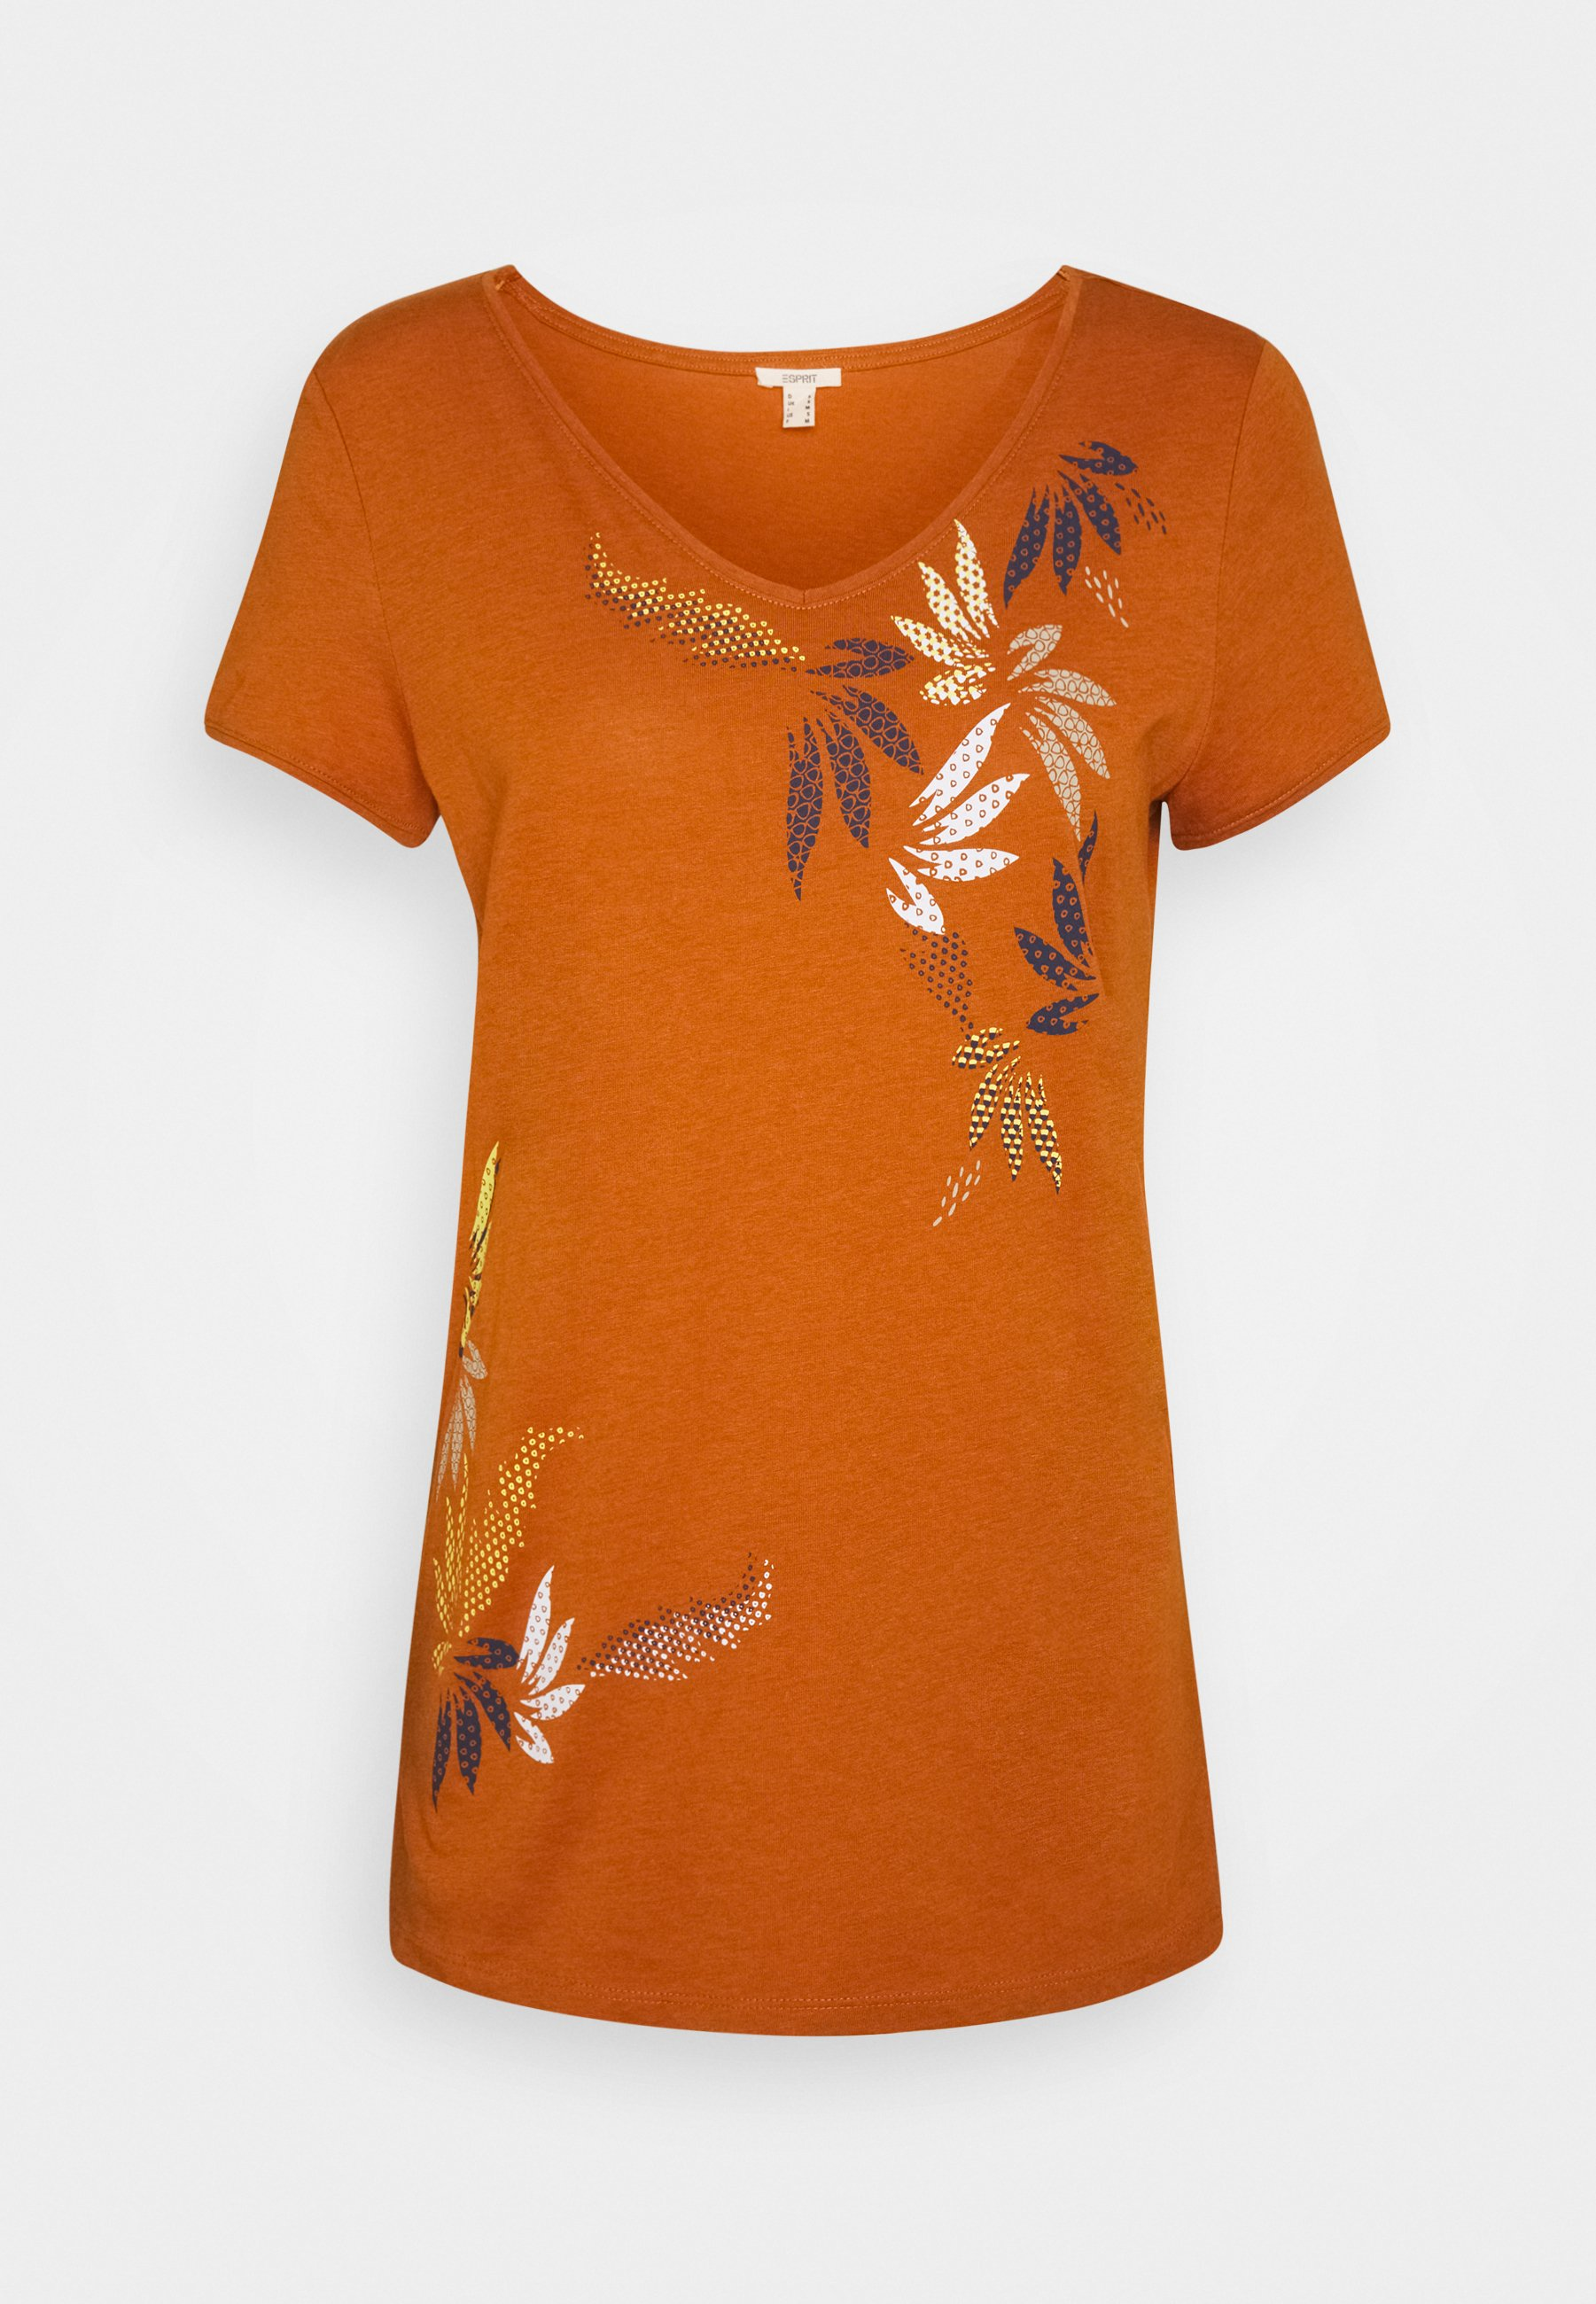 Esprit Leaf Tee - T-shirts Med Print Rust Brown/brun